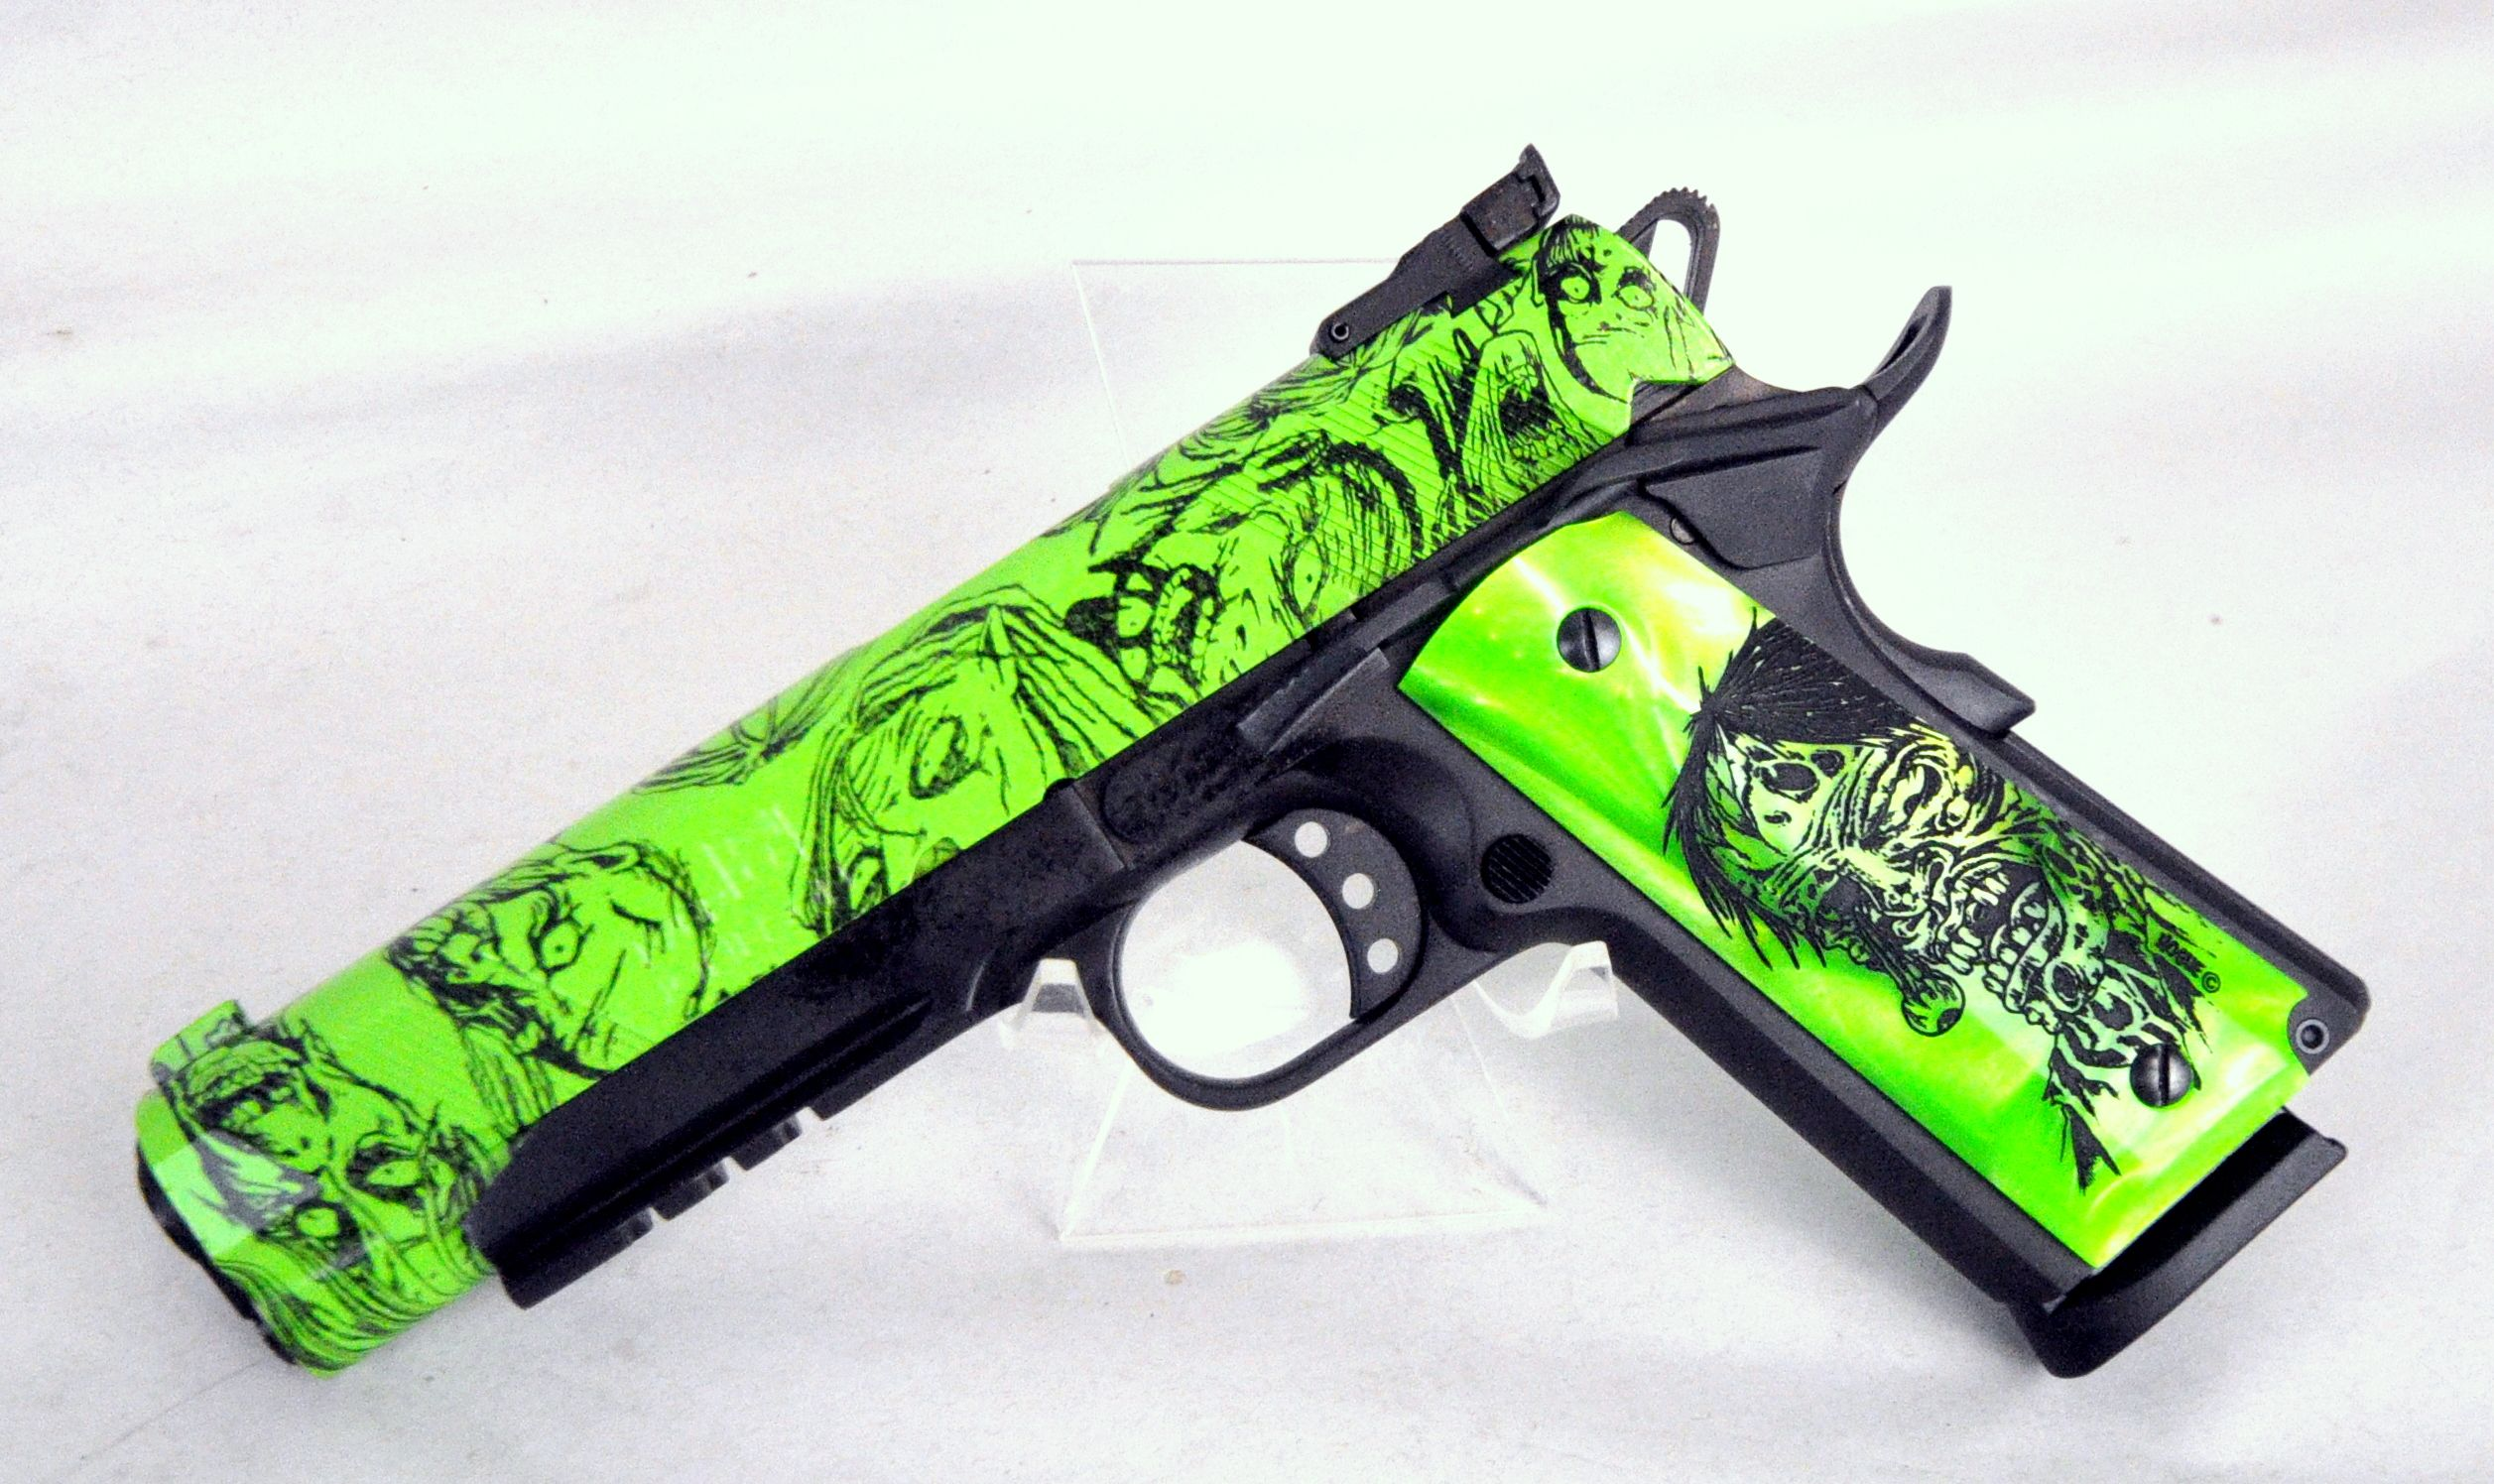 The Eagle LR Zombie from Iver Johnson is a Gov\'t-size 1911 pistol ...